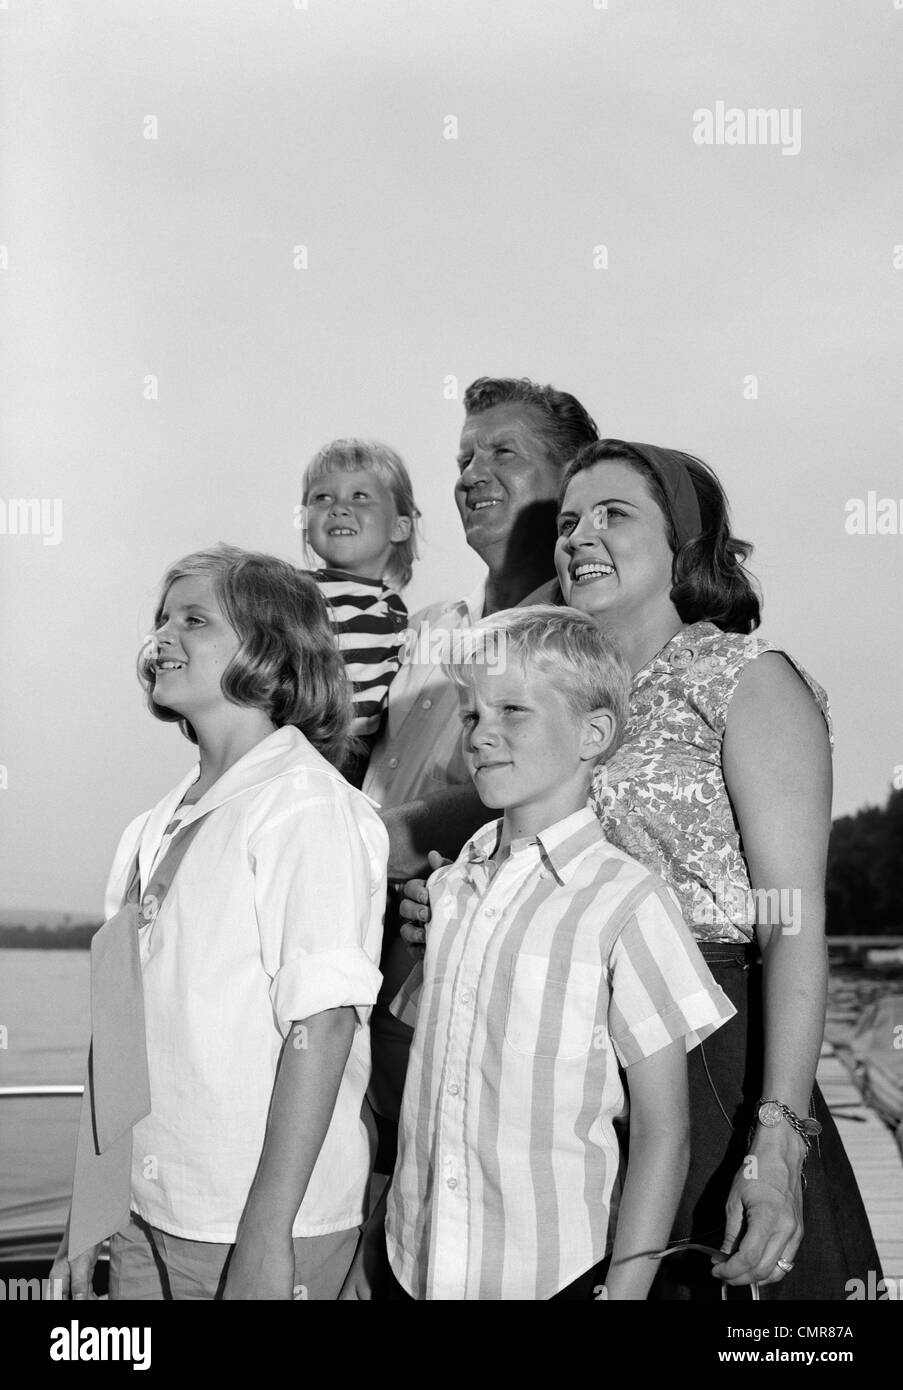 1960s SMILING FAMILY PORTRAIT FATHER MOTHER TWO DAUGHTERS SON STANDING TOGETHER OUTDOORS - Stock Image